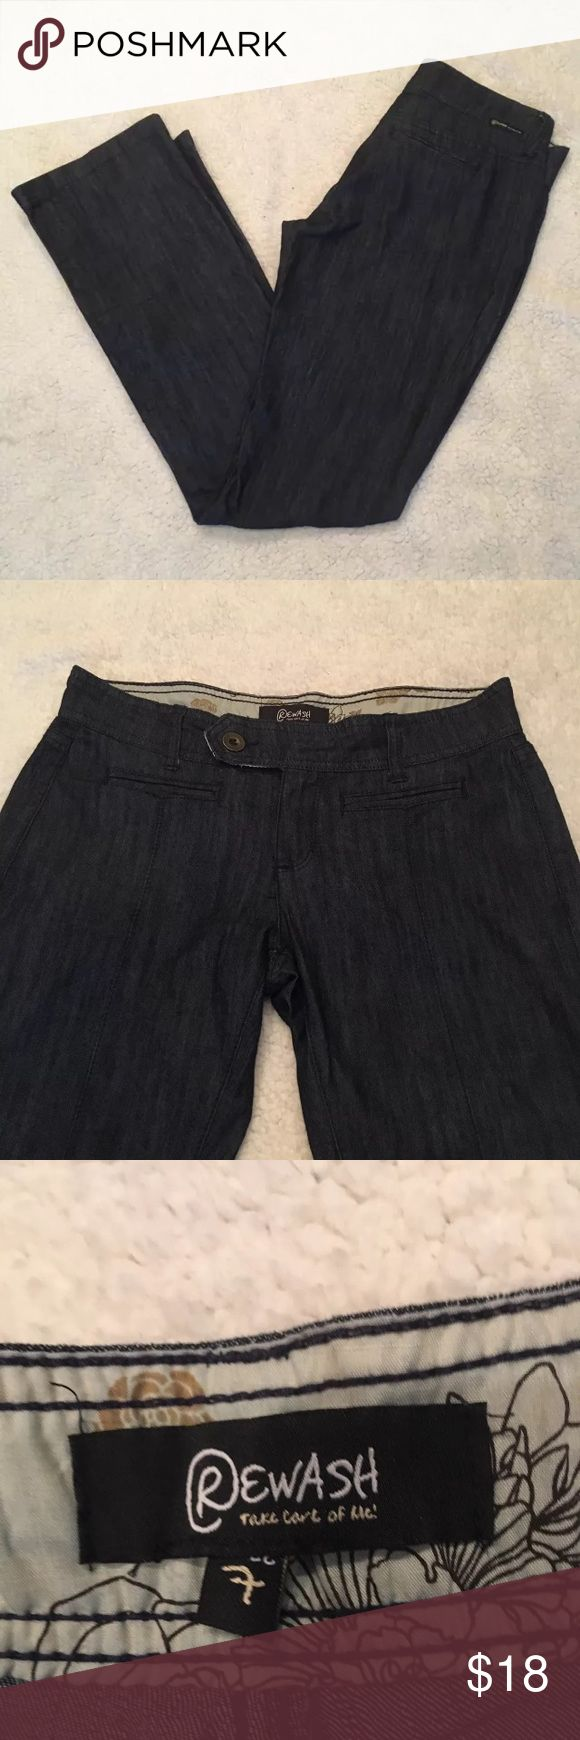 Ladies Rewash Jeans Size 7 This is a preowned pair of straight legged Rewash denim trouser pants size 7. Feel free to message me with any questions. Have a blessed day!  Size: 7 Inseam: 32 inches Rise: 8 inches Waist: 32 inches 70% cotton  29% polyester 1% spandex  ::A12 Rewash Jeans Straight Leg